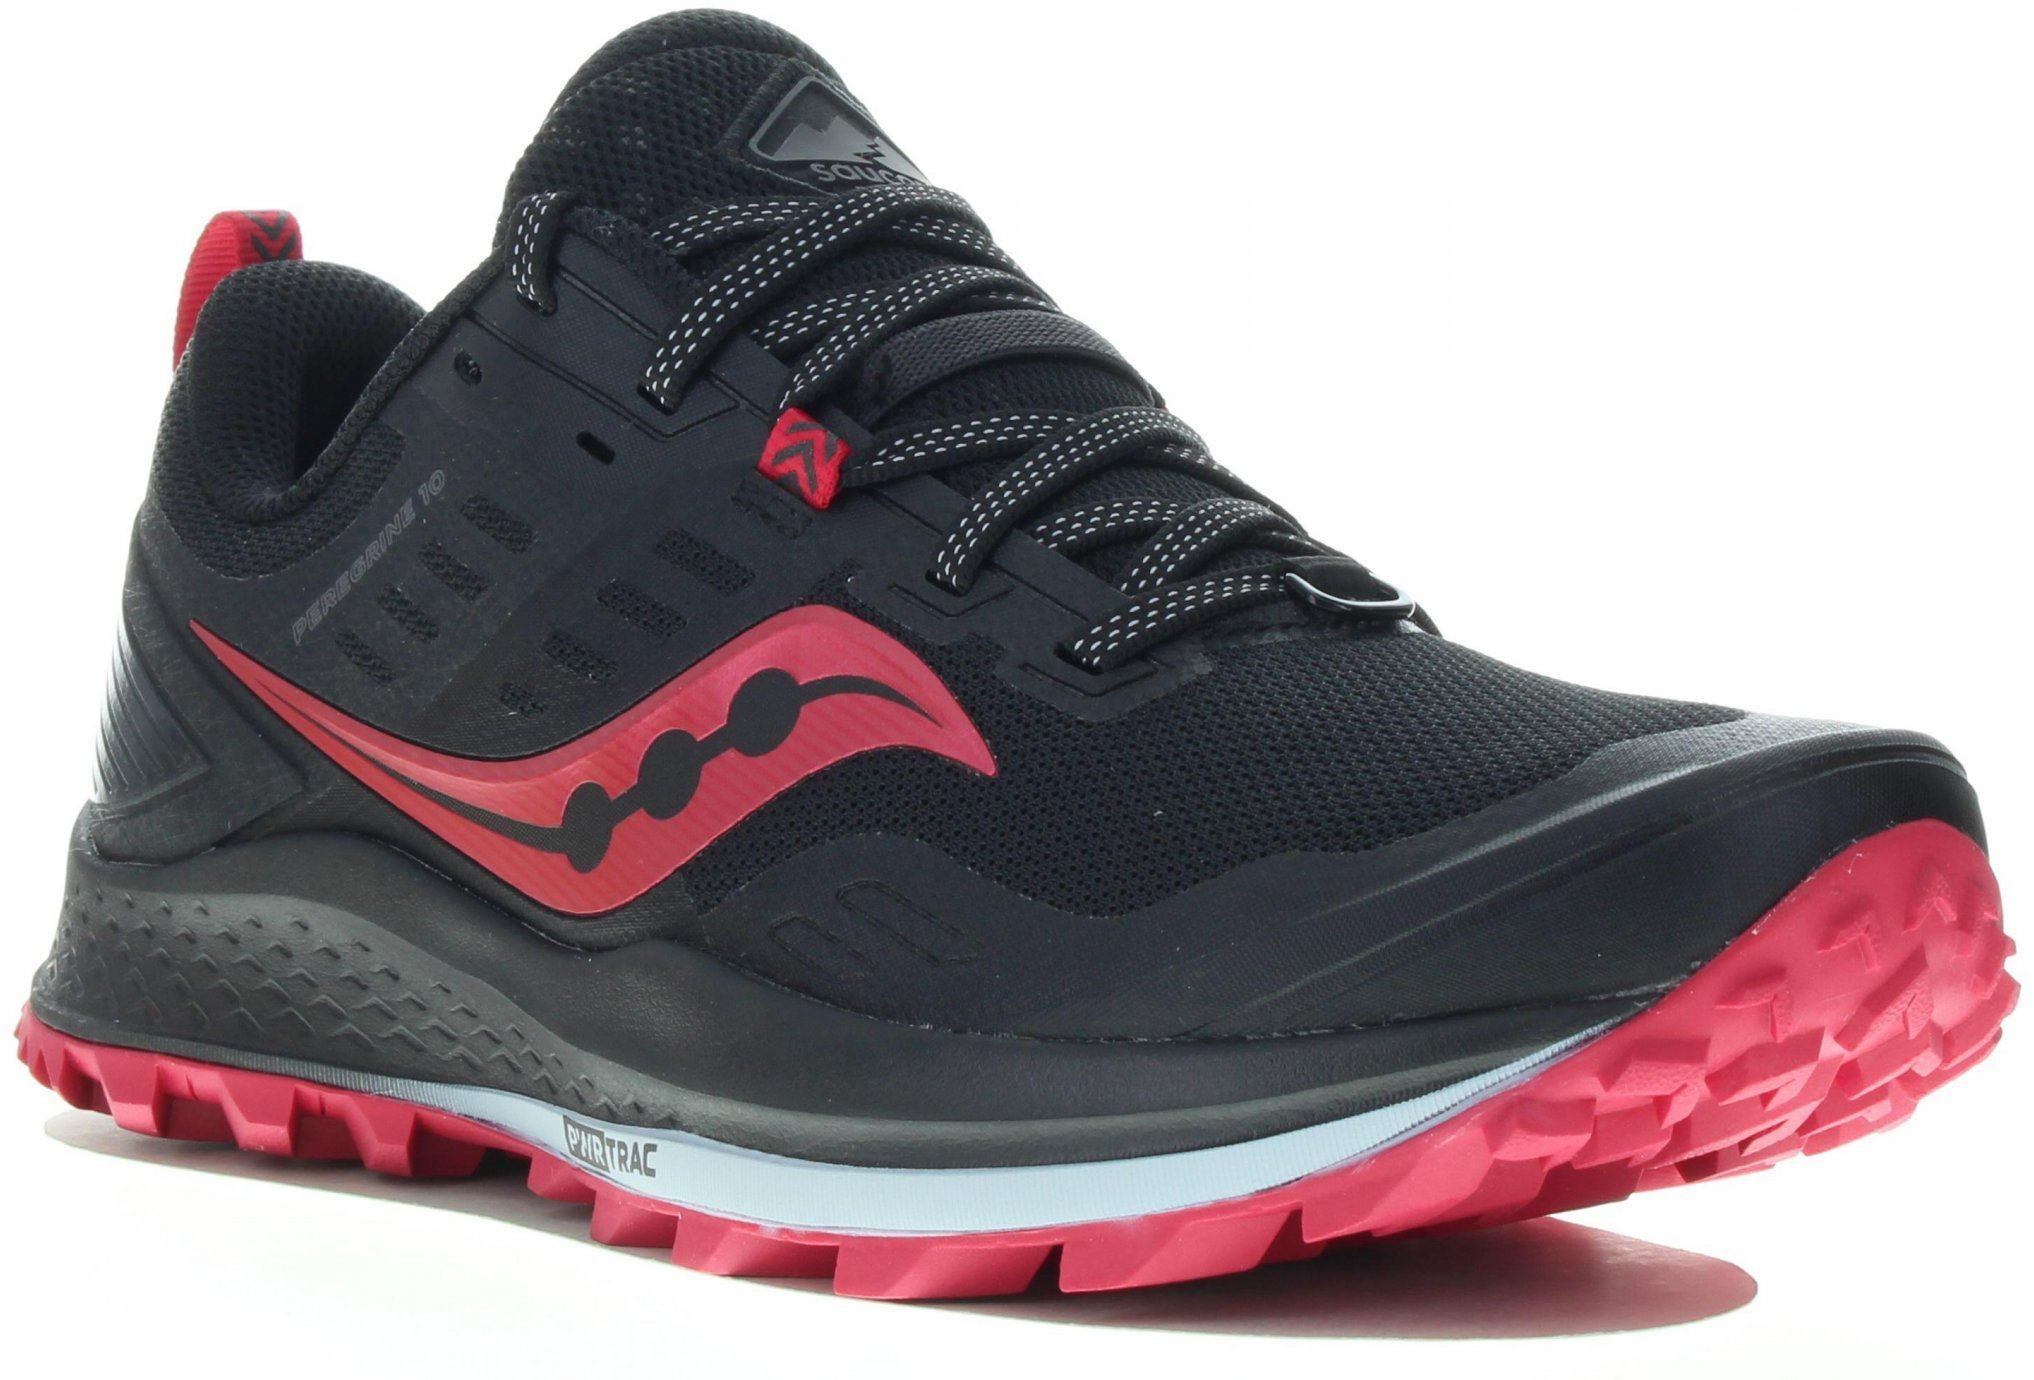 Saucony Peregrine 10 Chaussures running femme